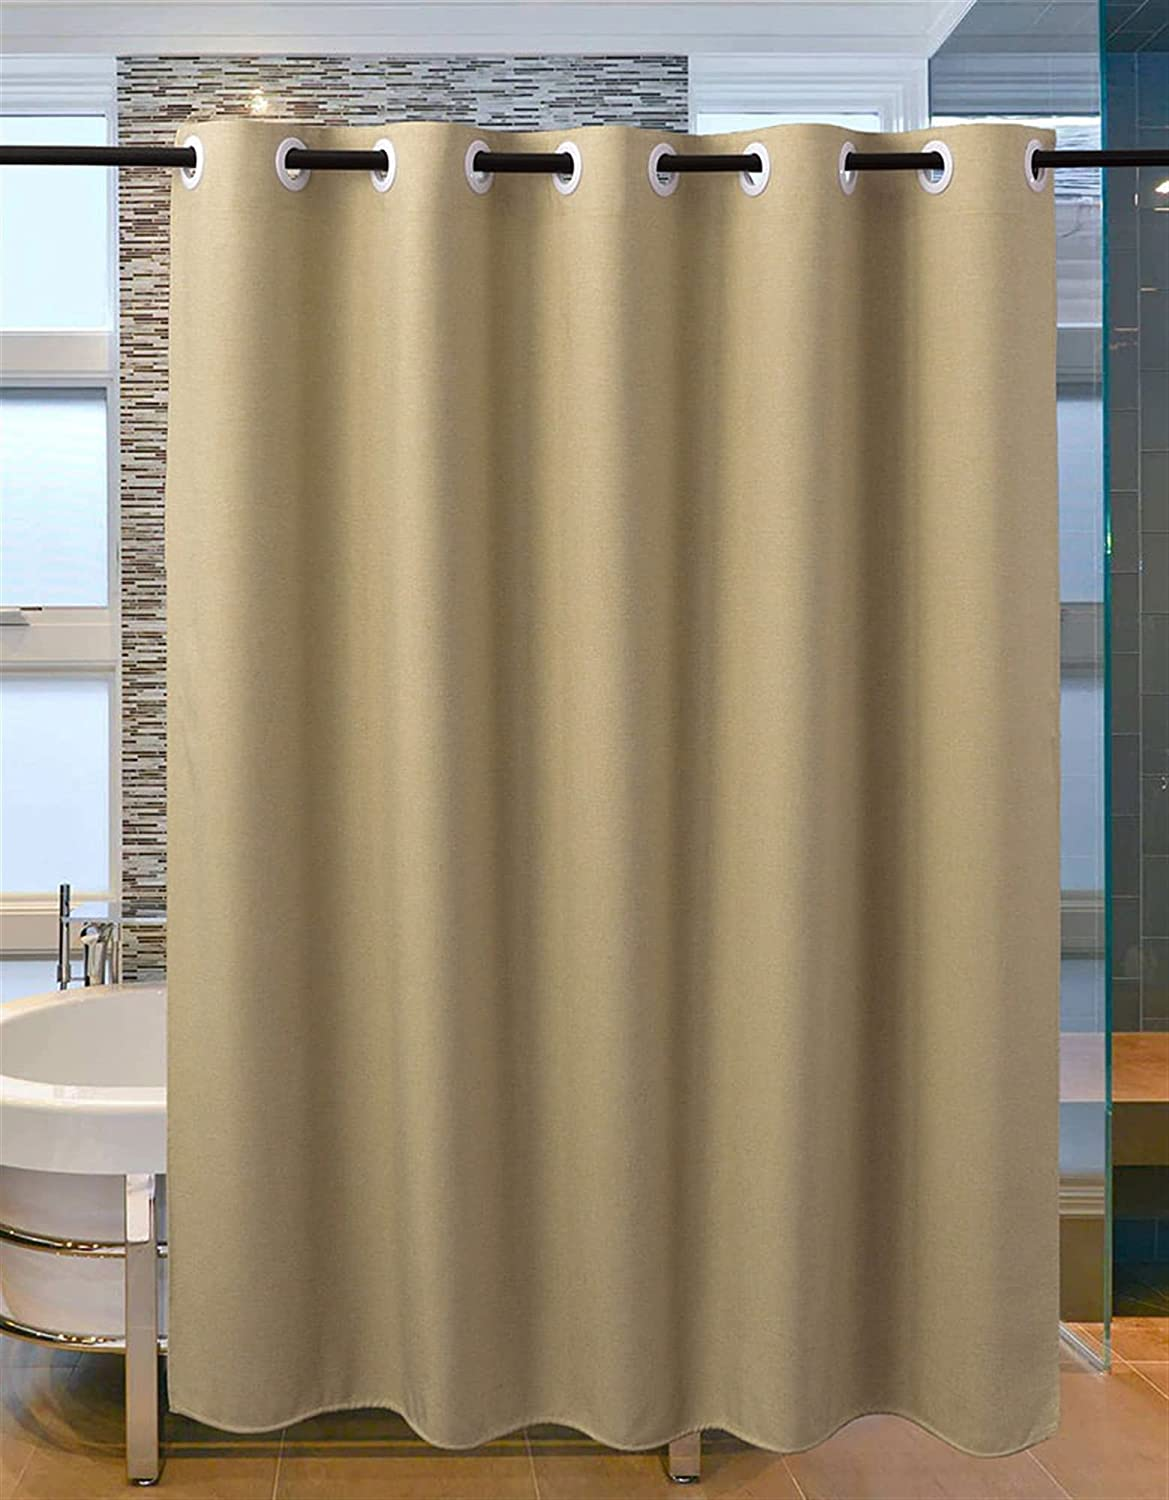 ARWQ857 Shower 55% OFF 67% OFF of fixed price Curtain Imitation Waterproof Linen